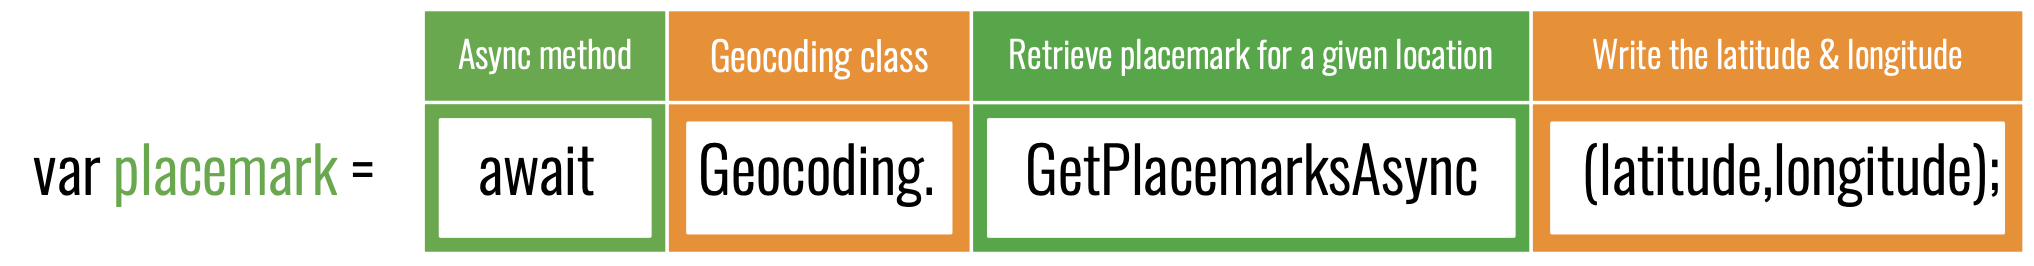 Step 1: Add Await as Async method -> Step 2: Add the Geocoding class-> Step 3: Add the GetPlacemarksAsync() method that retrieve placemark for a given location -> Step 4: Inside it, add the latitude and longitude that you want